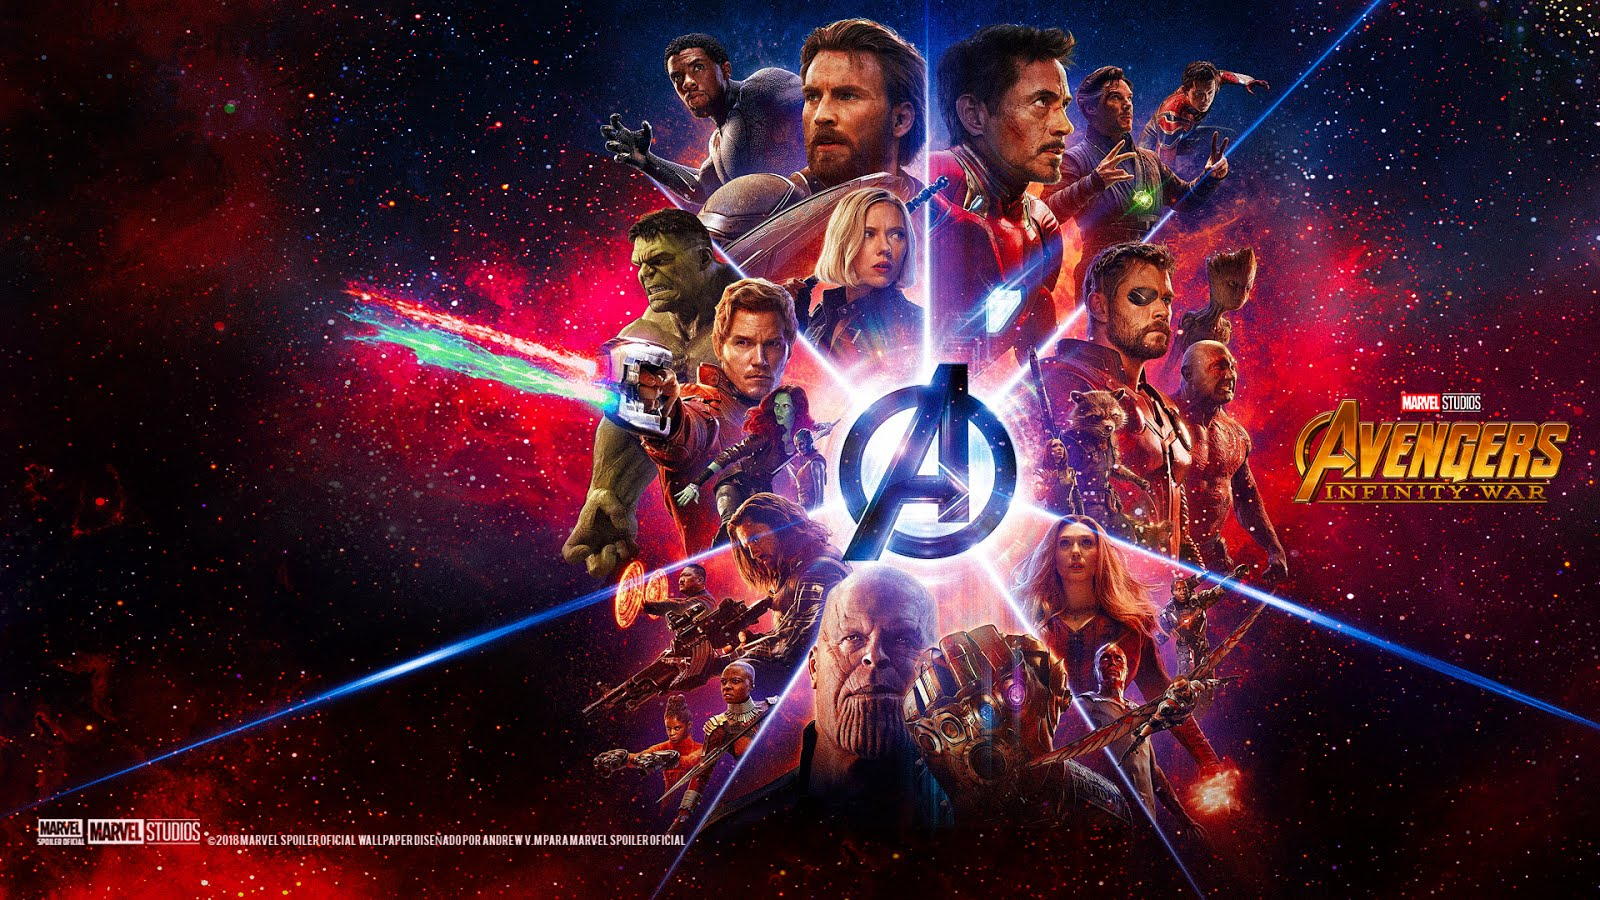 AVENGERS INFINITY WAR Wallpaper IMAX HD